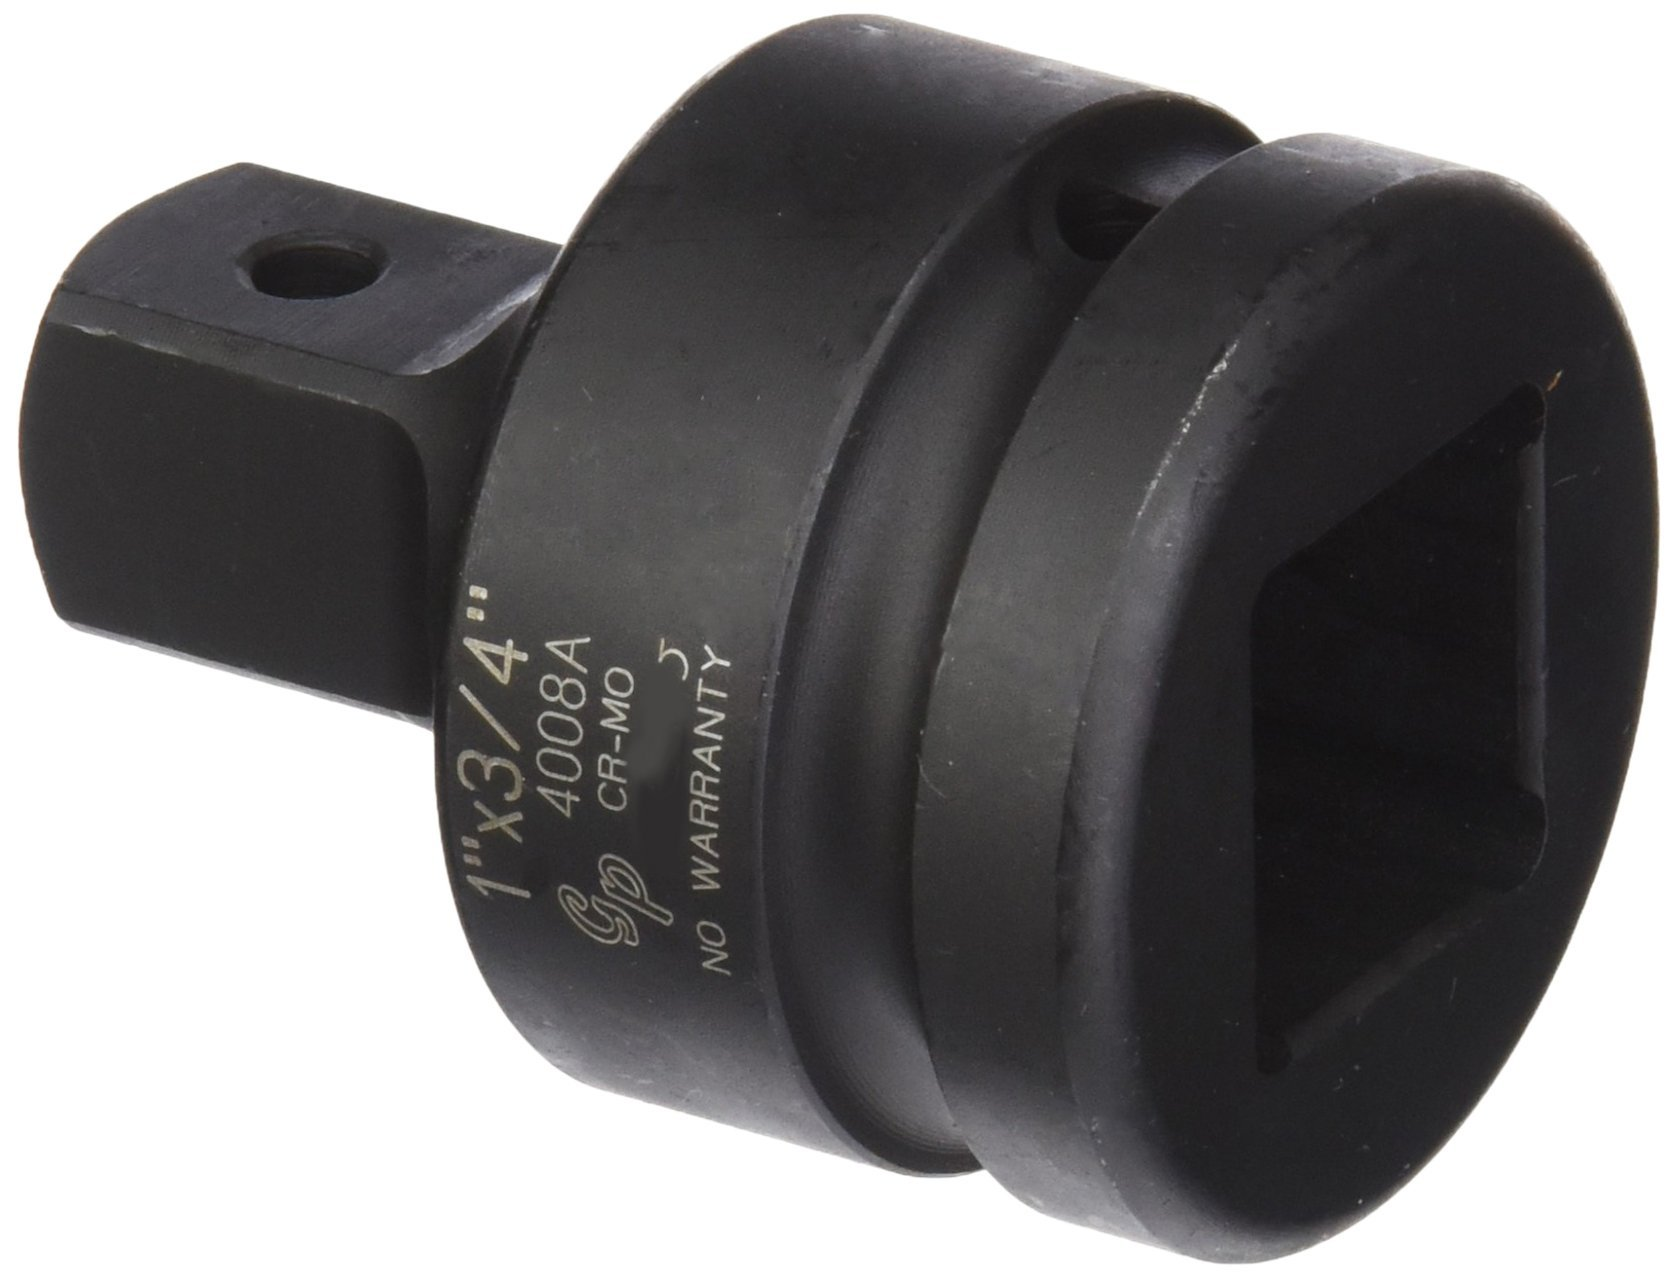 Grey Pneumatic (4008A) 1'' Female x 3/4'' Male Adapter Socket with Pin Hole